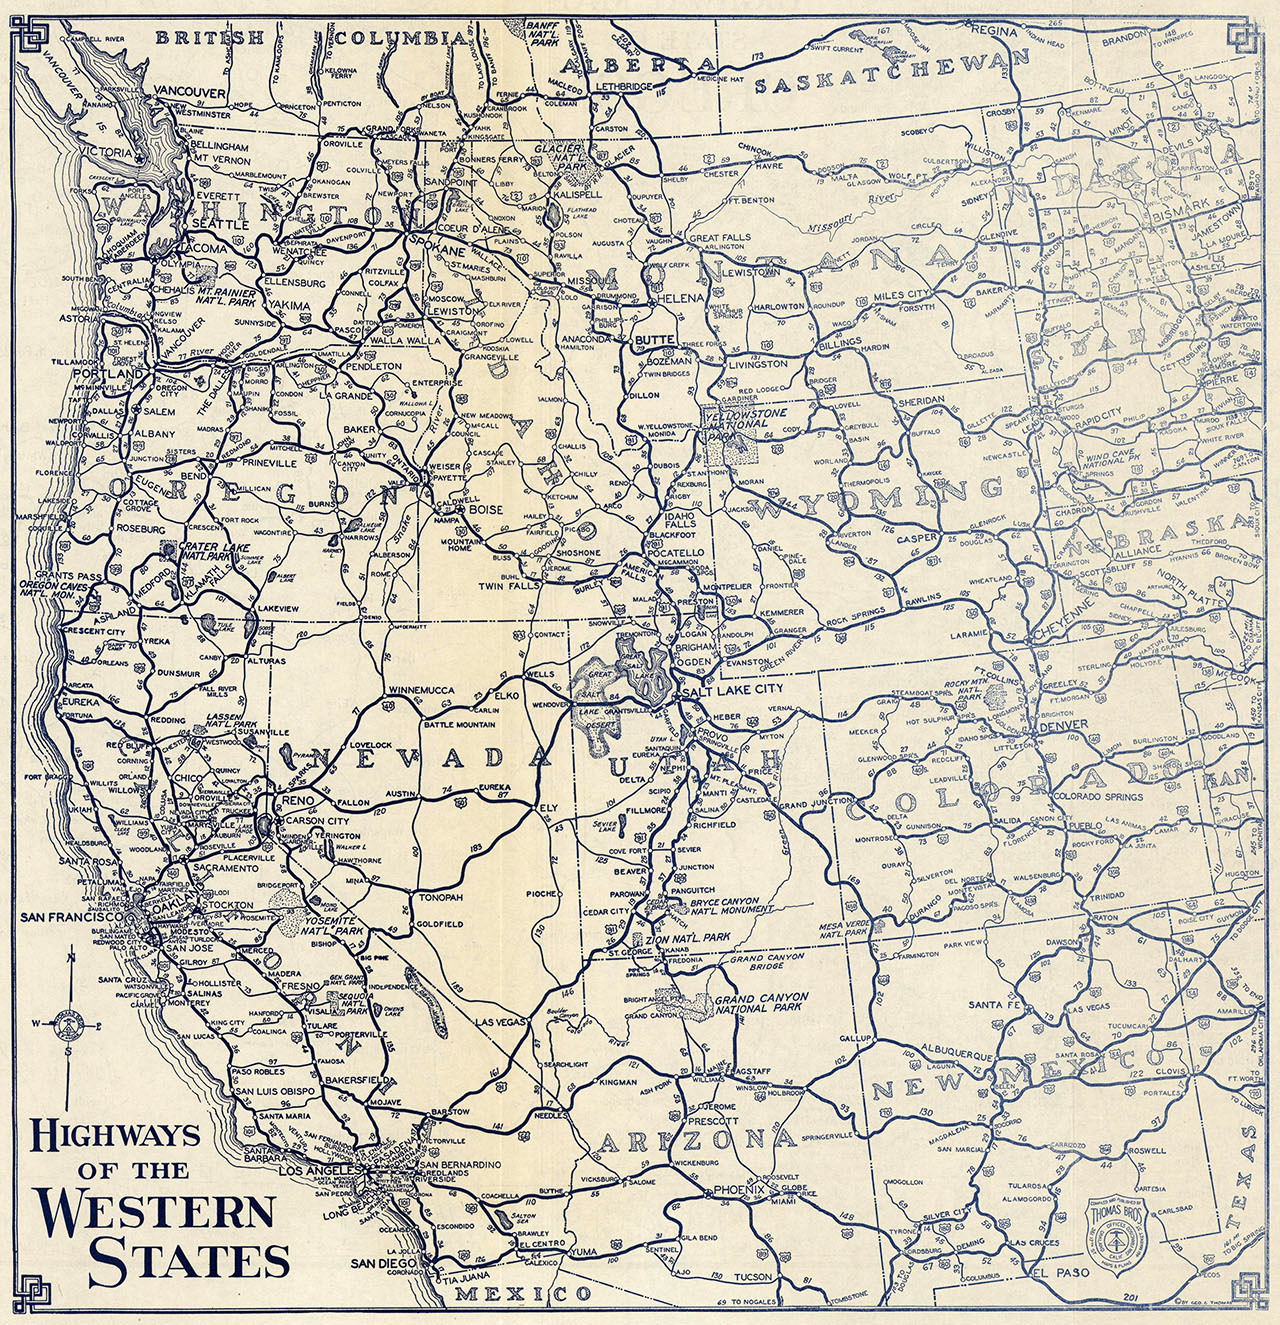 A 1938 Thomas Bros. map of the highways of the western United States. Courtesy of the David Rumsey Map Collection.